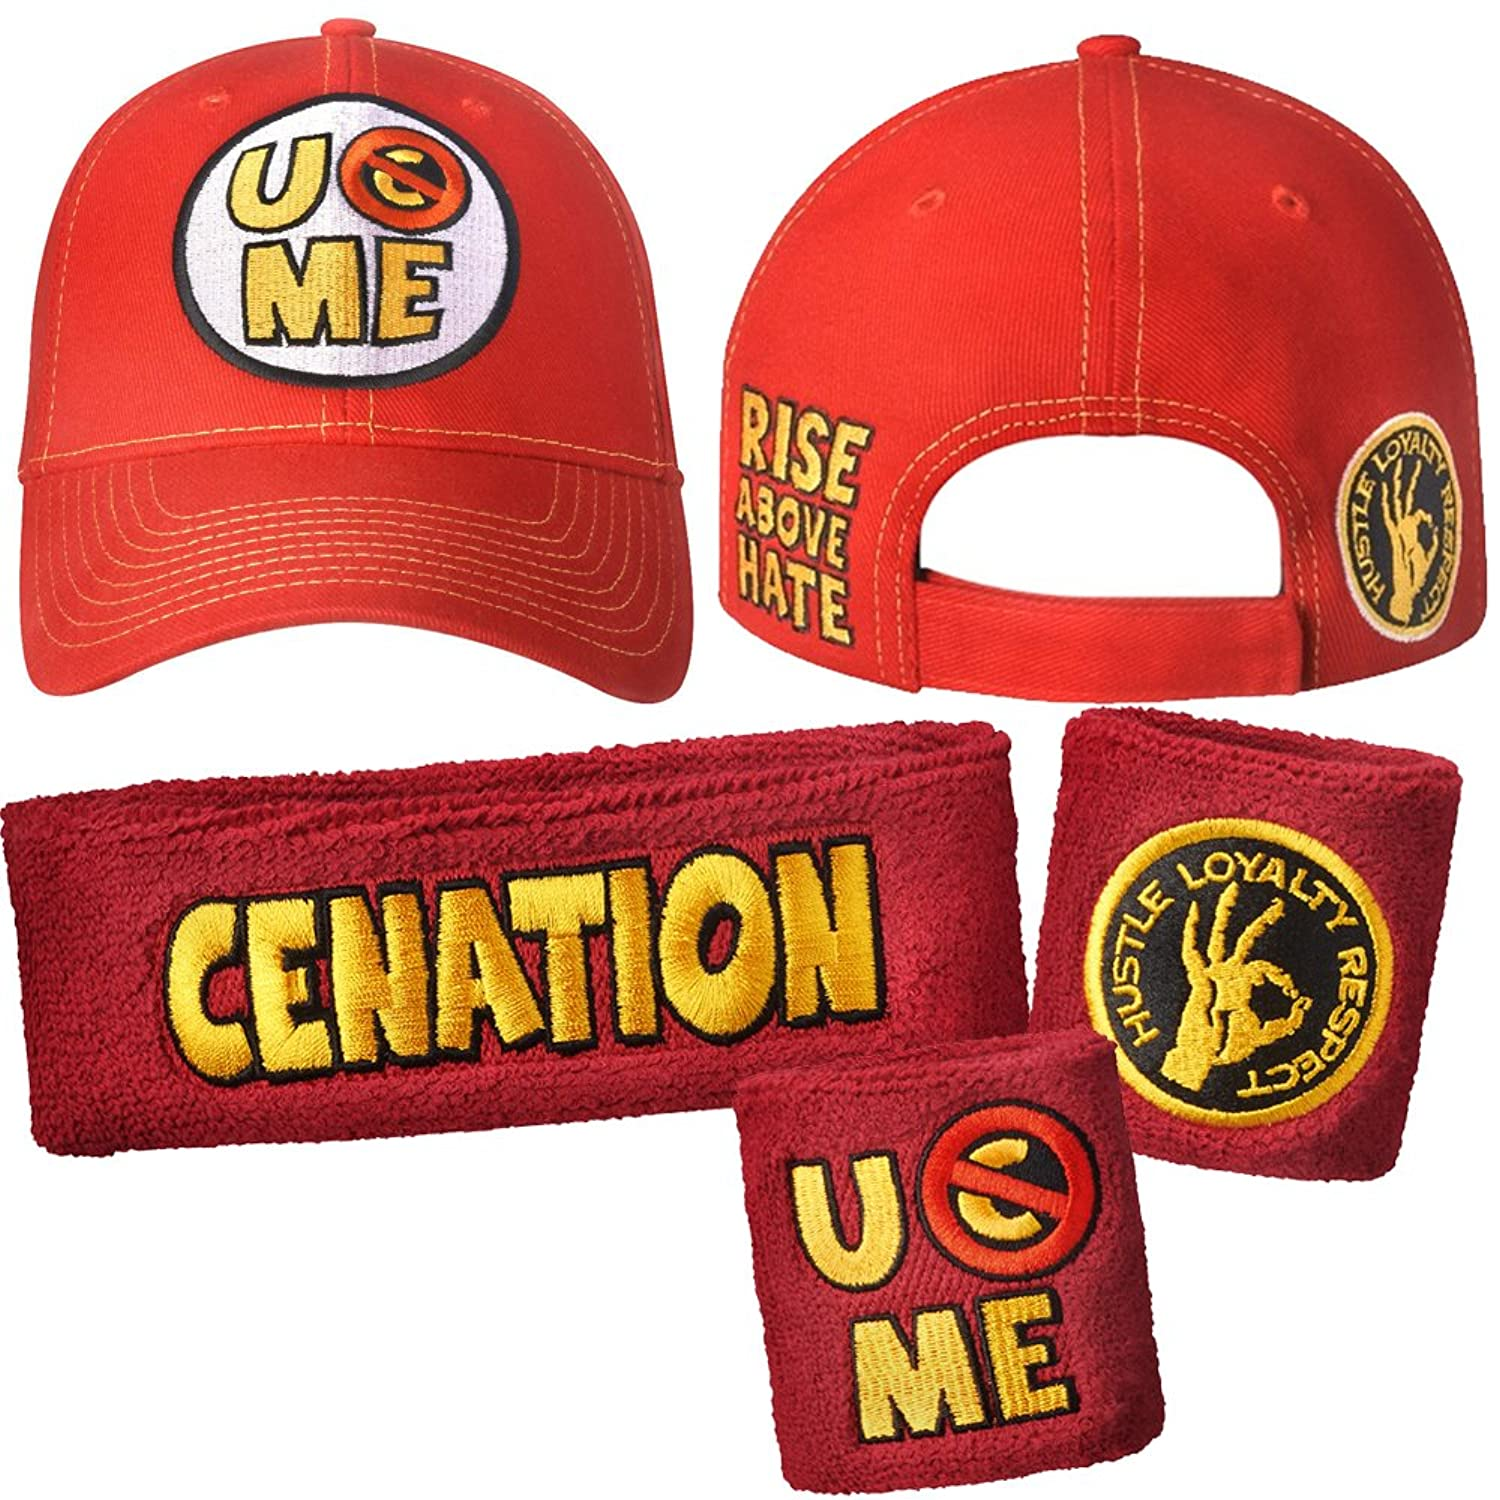 John Cena Never Give Up Baseball Hats Cap U Can't See Me Wristbands Sweatband